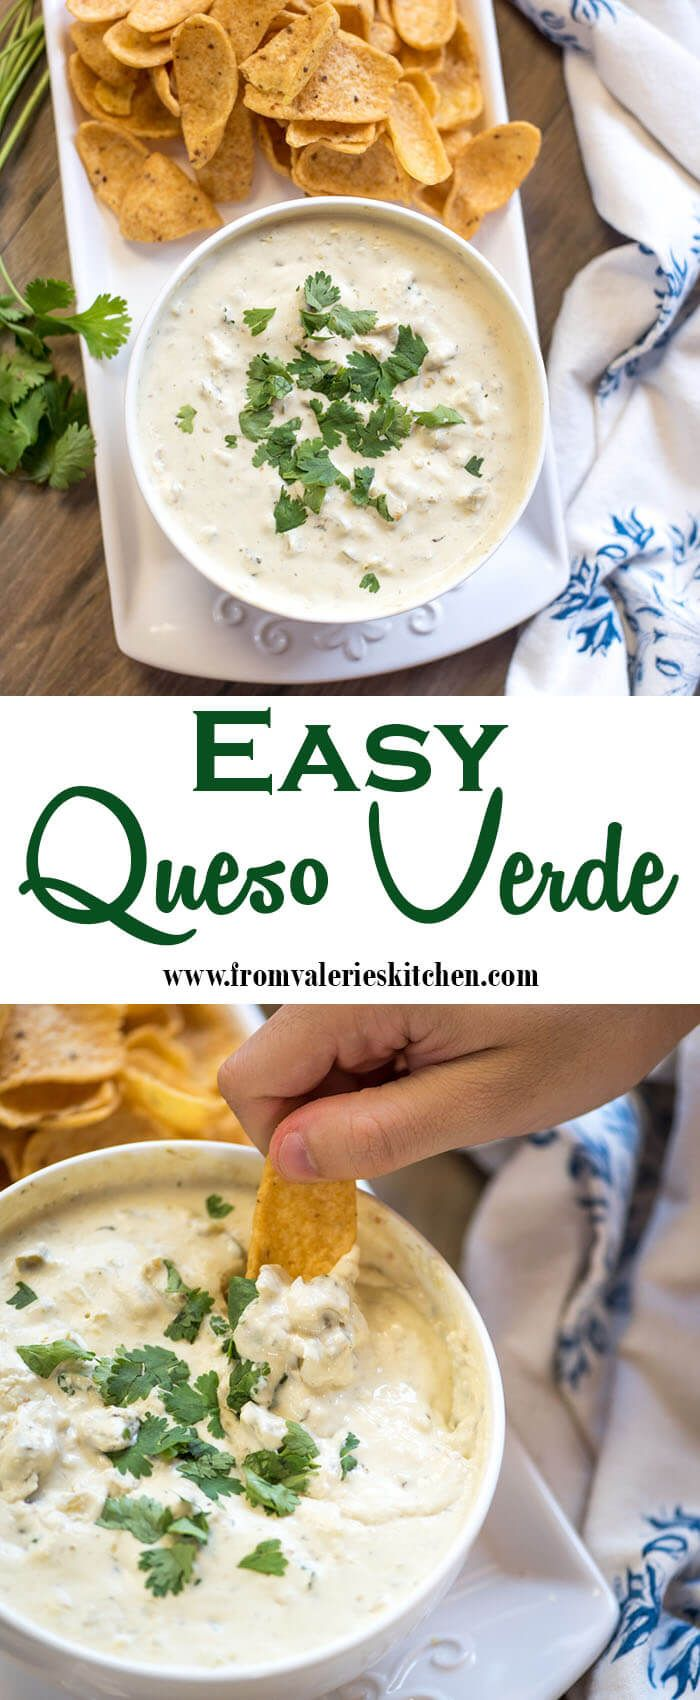 When you need an appetizer and you need it fast this Easy Queso Verde is just the ticket. It's ready, start to finish, in about 5 minutes and I guarantee your guests are going to love it!